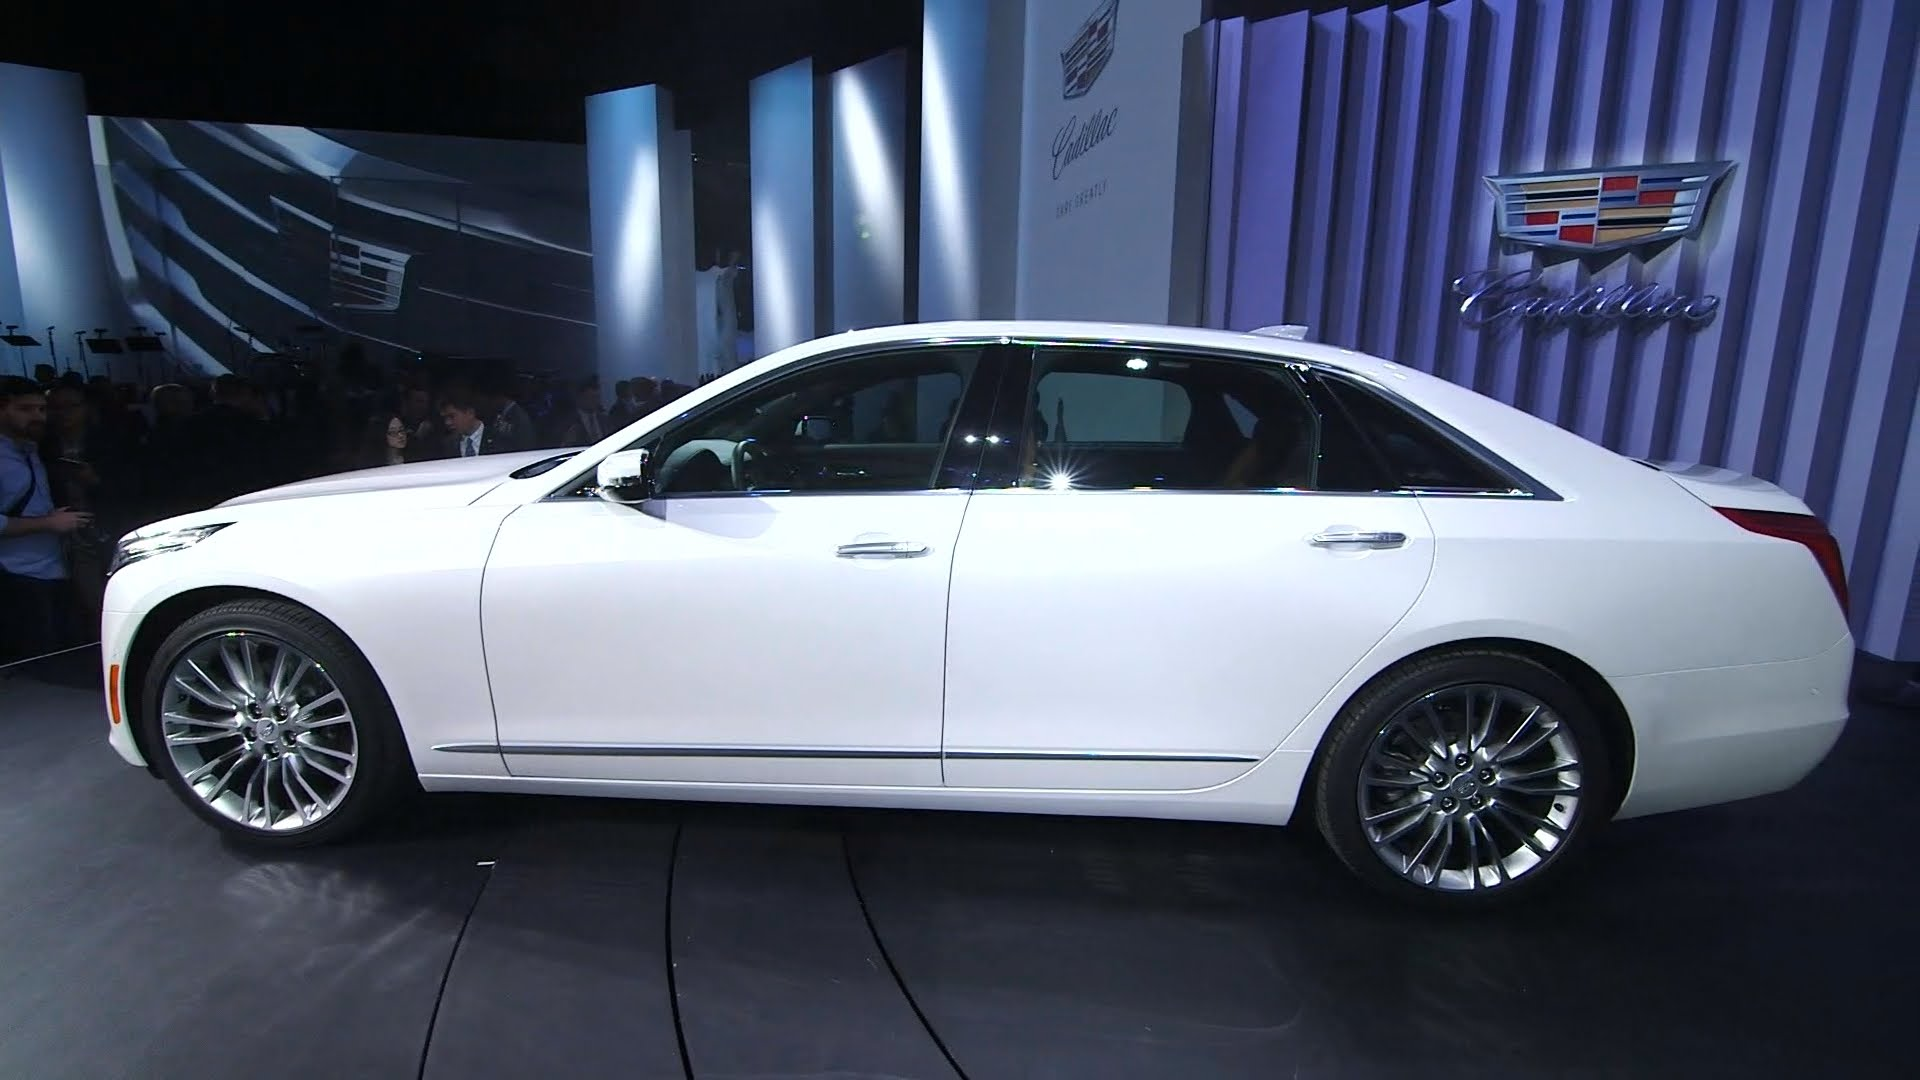 Hands-On With Cadillac CT6: The New Sedan Taking On BMW